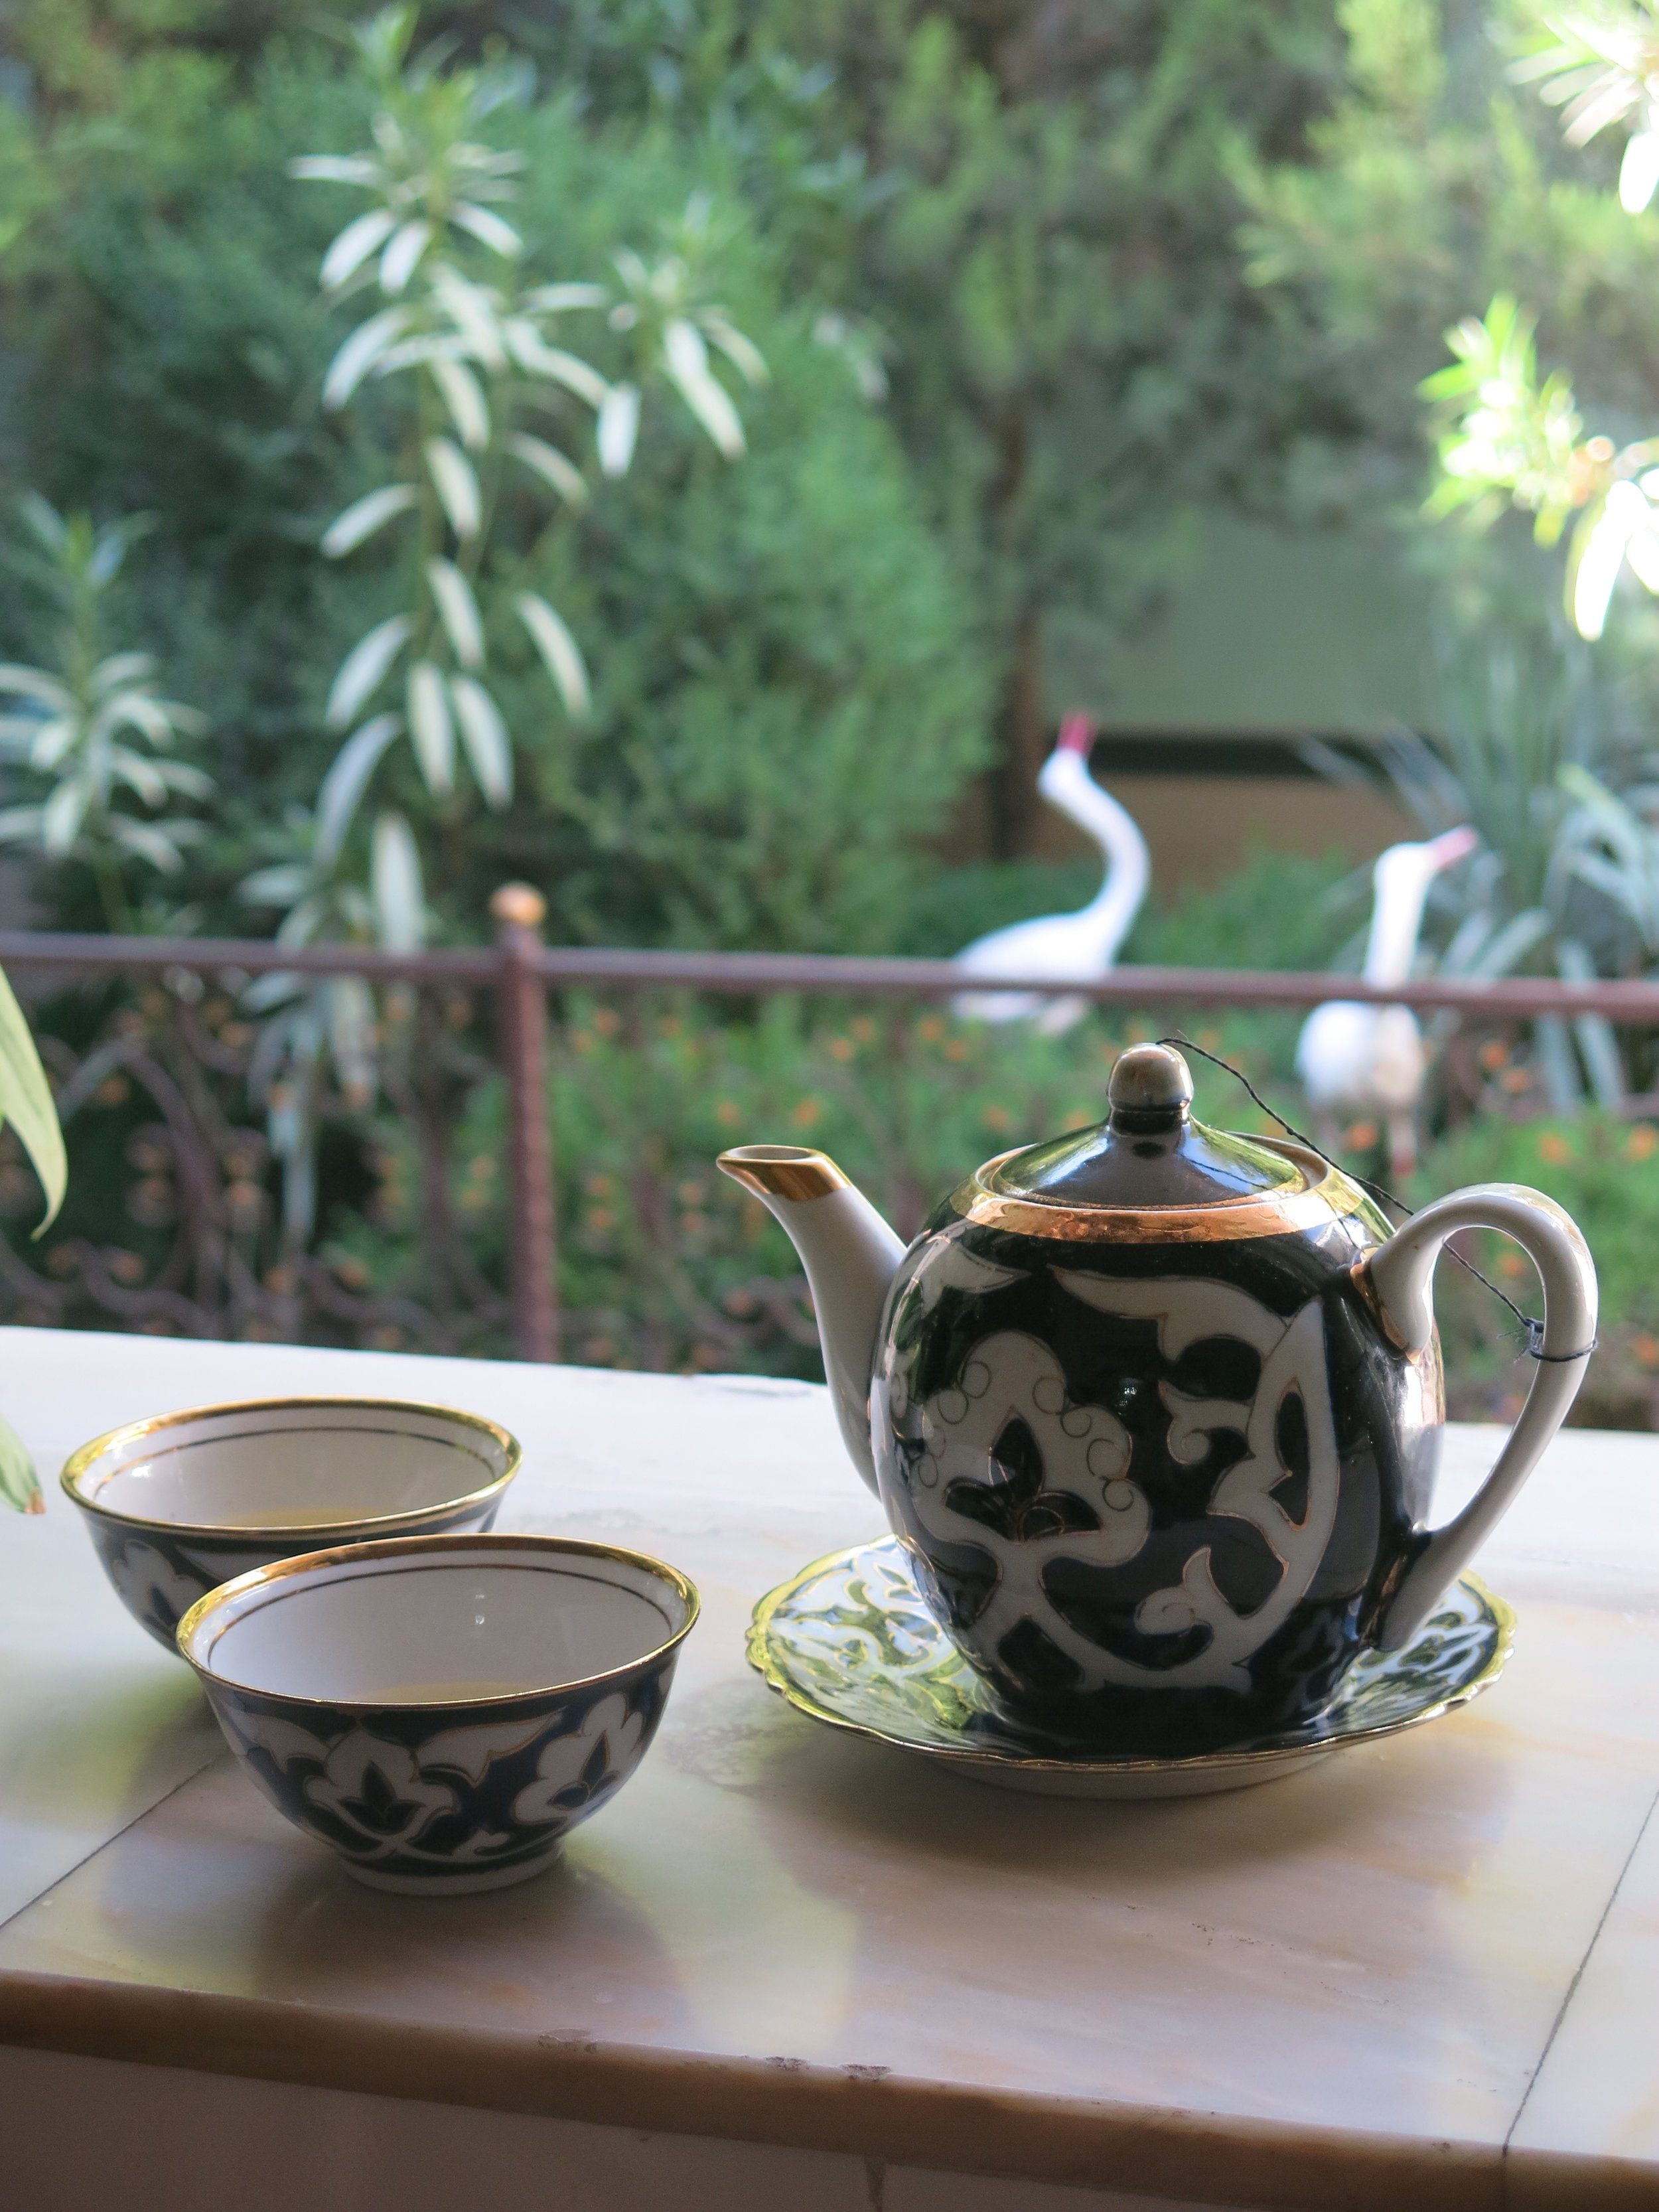 Green tea after a meal in Samarkand